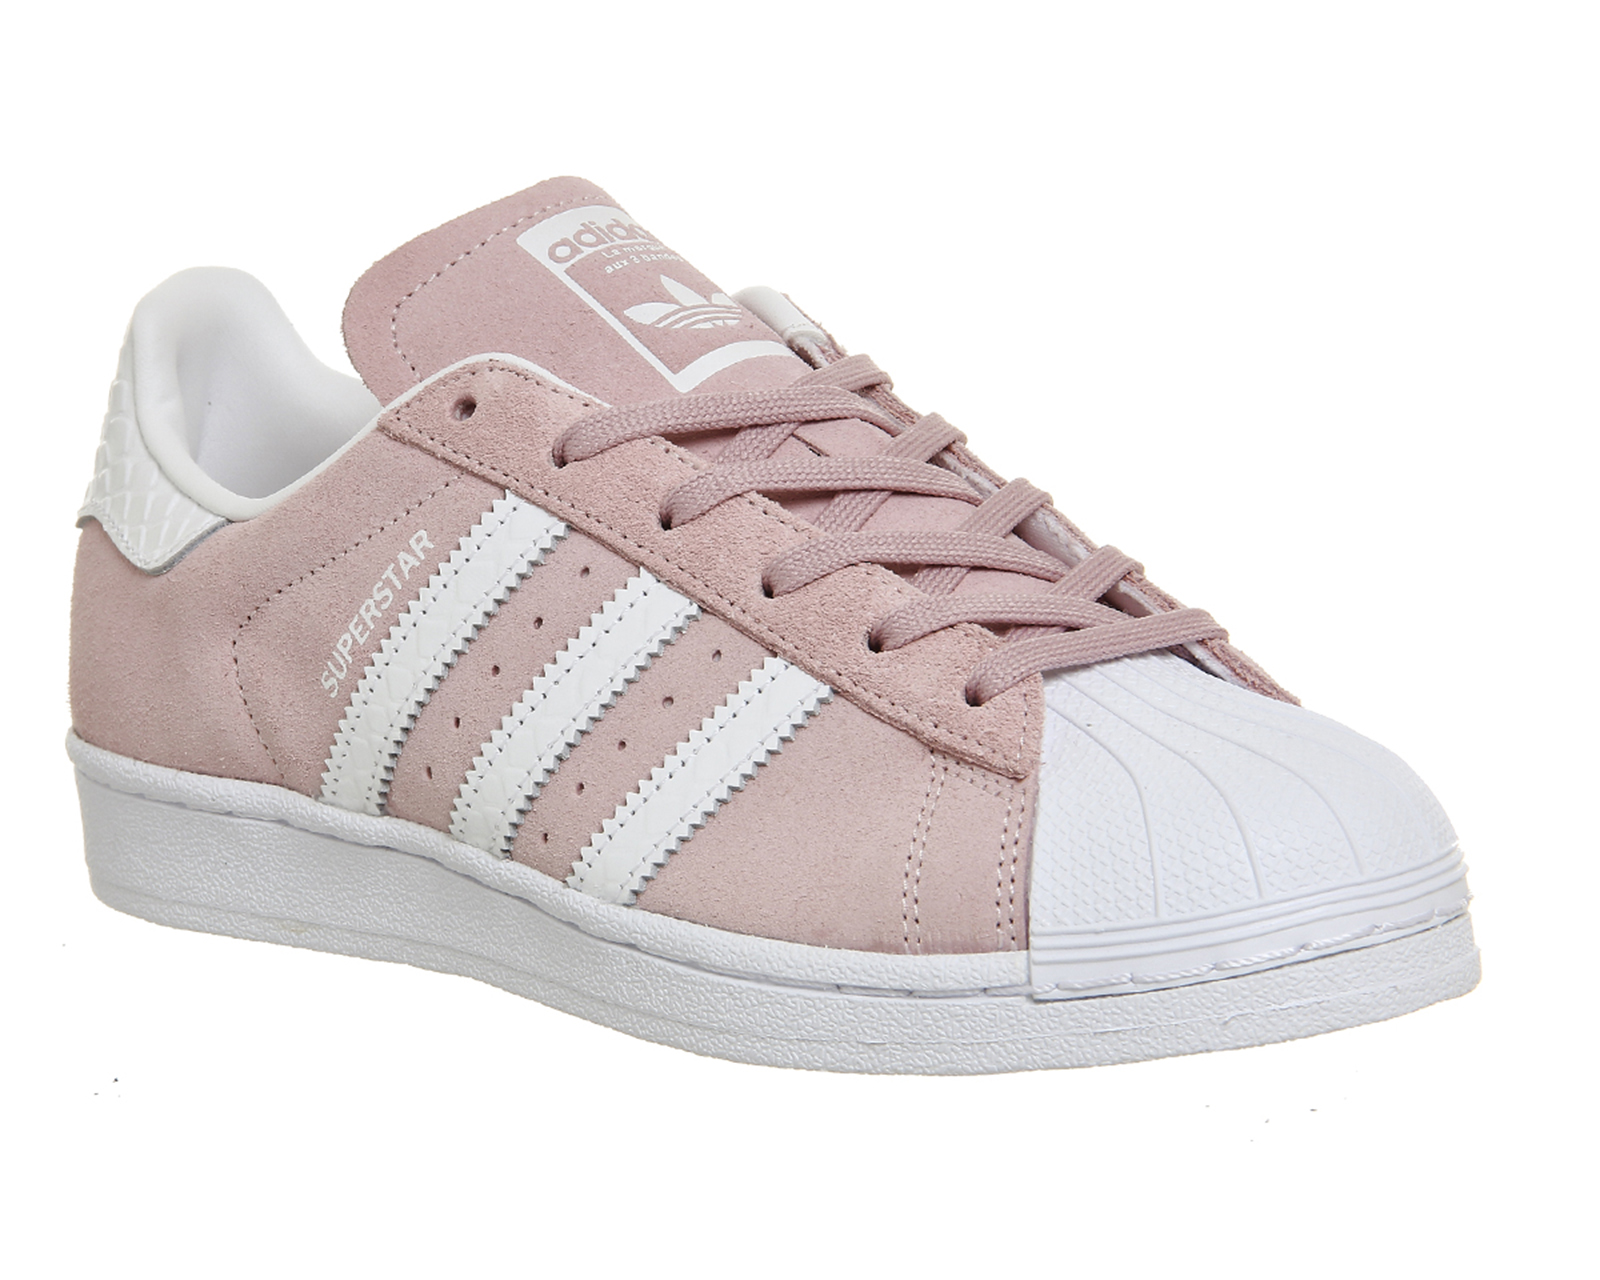 Mens Adidas Superstar 1 Pink White Snake Trainers Shoes Ebay